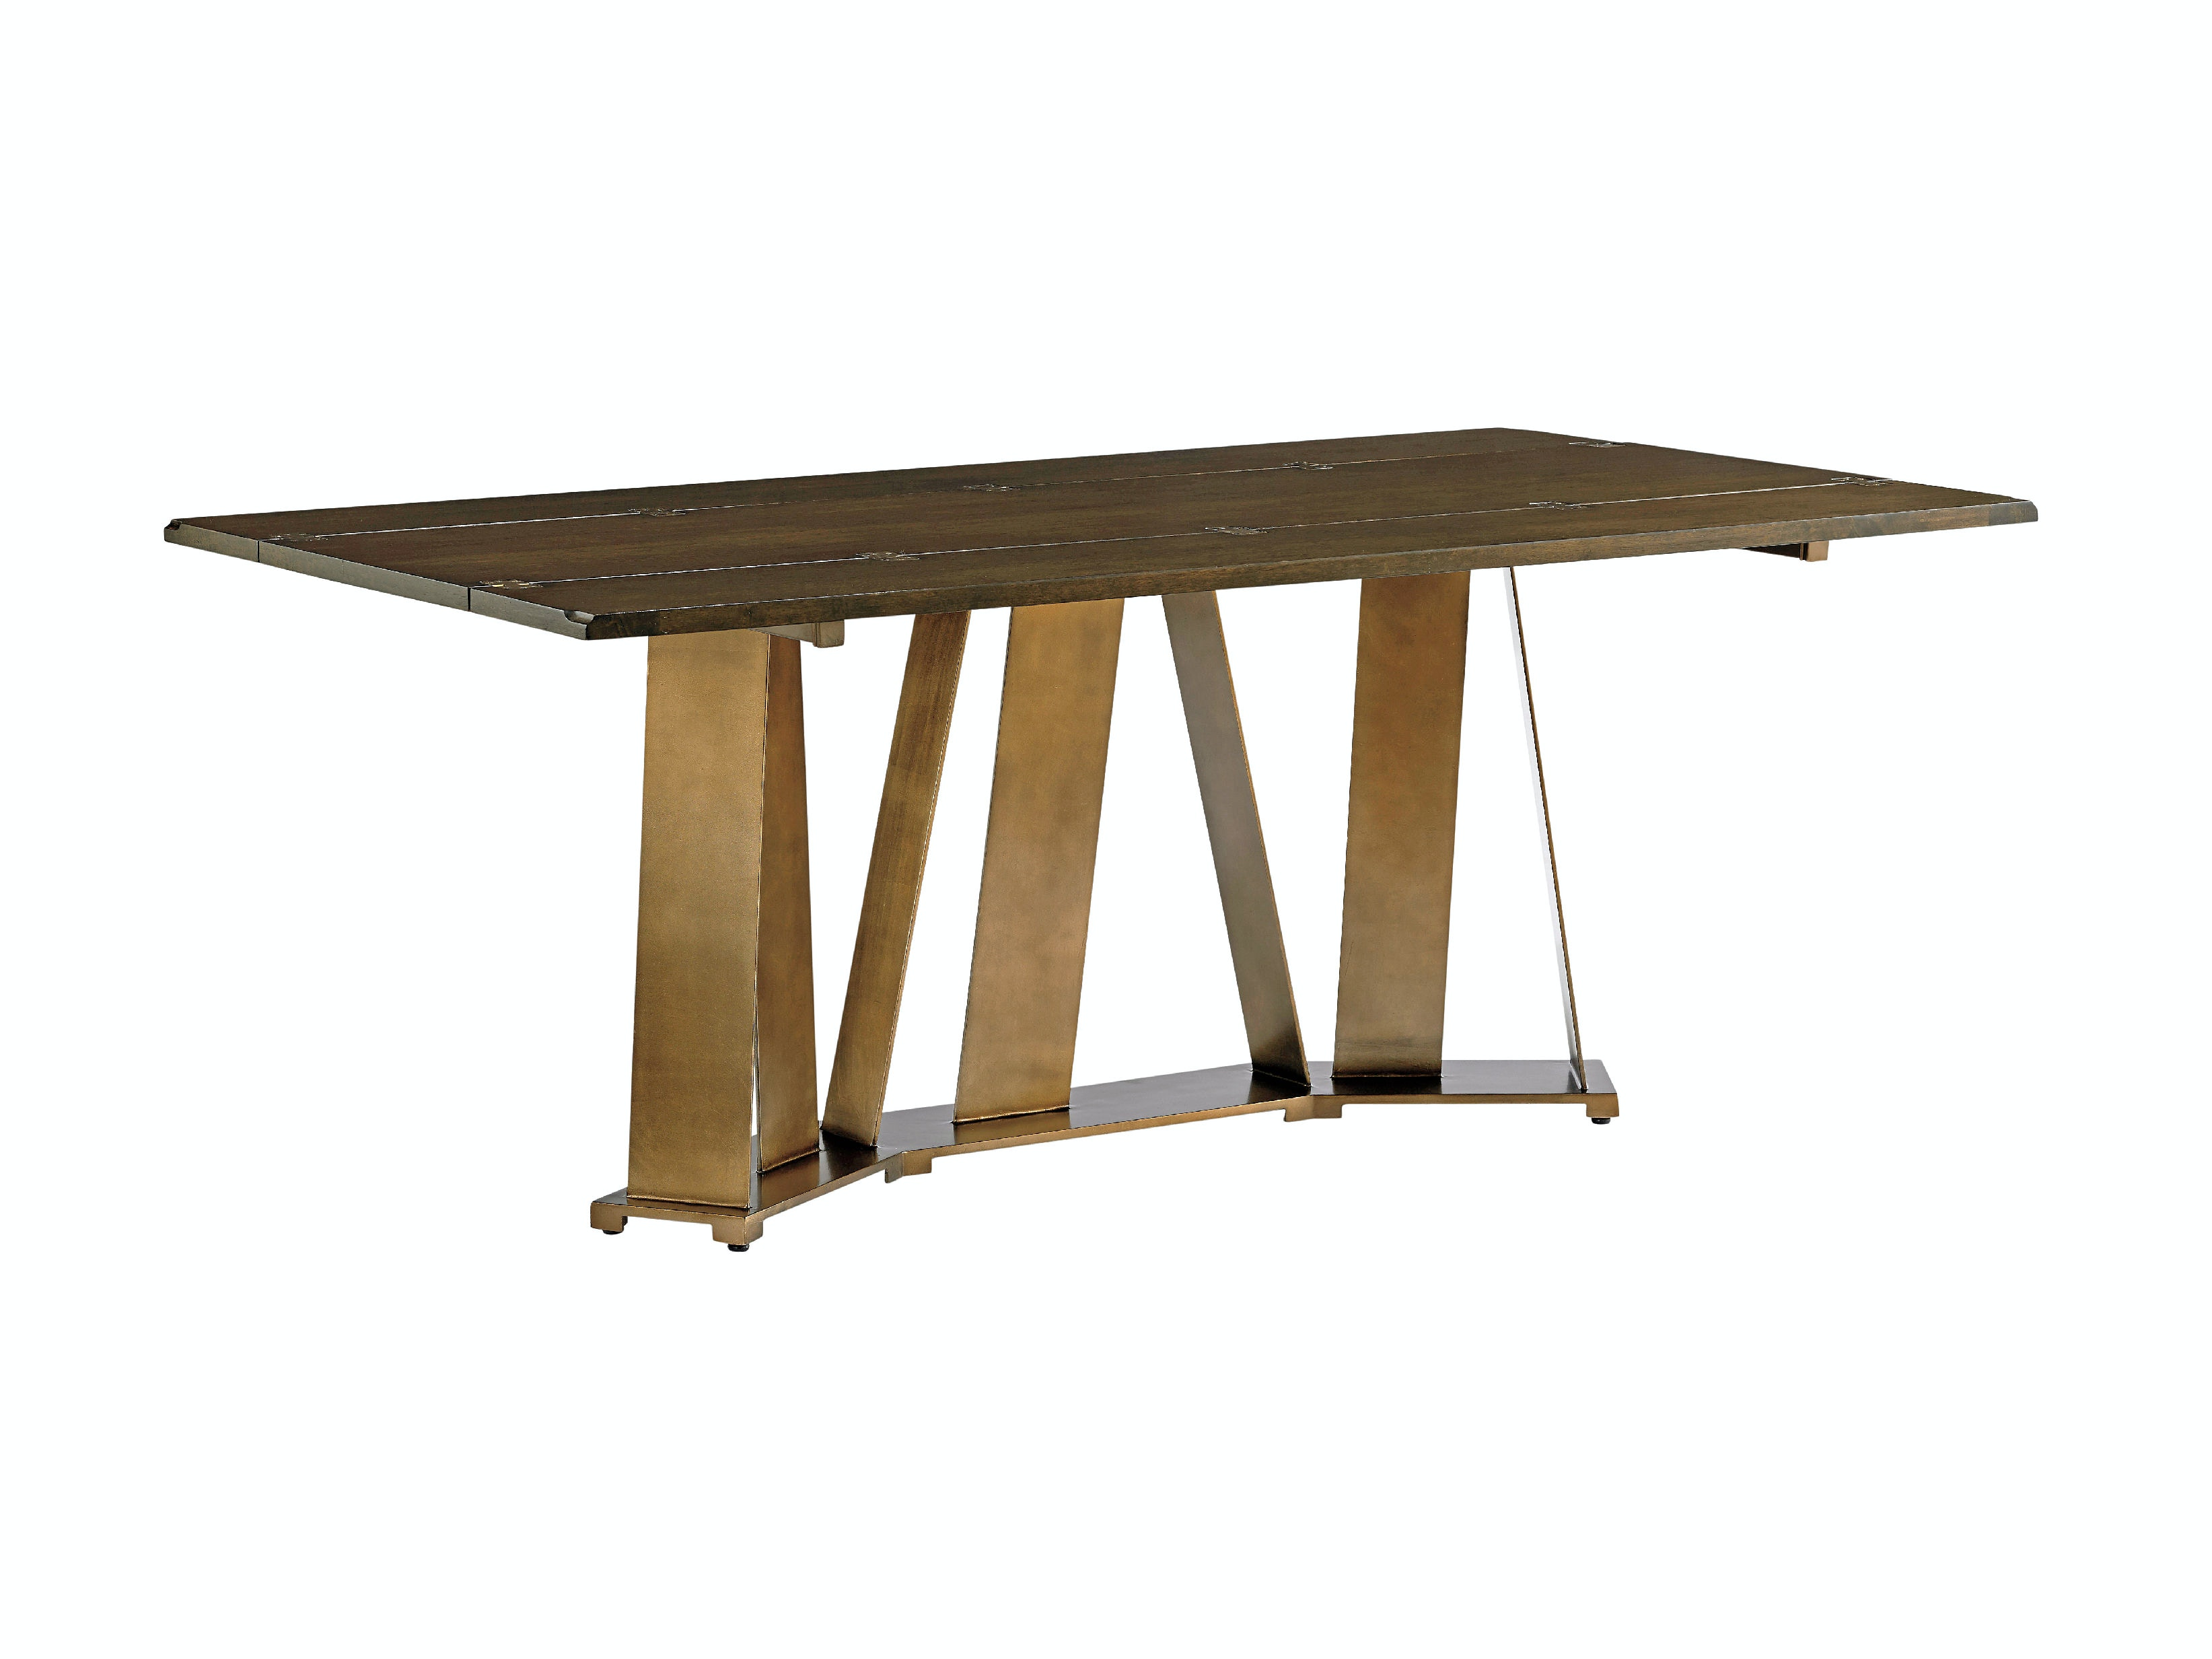 Tables for home office Minimalist Sligh Gateway Fliptop Console 190470 Furniture Bedroom Furniture Living Room Furniture Home Office Tables Tomsprice Furniture Chicago Suburbs